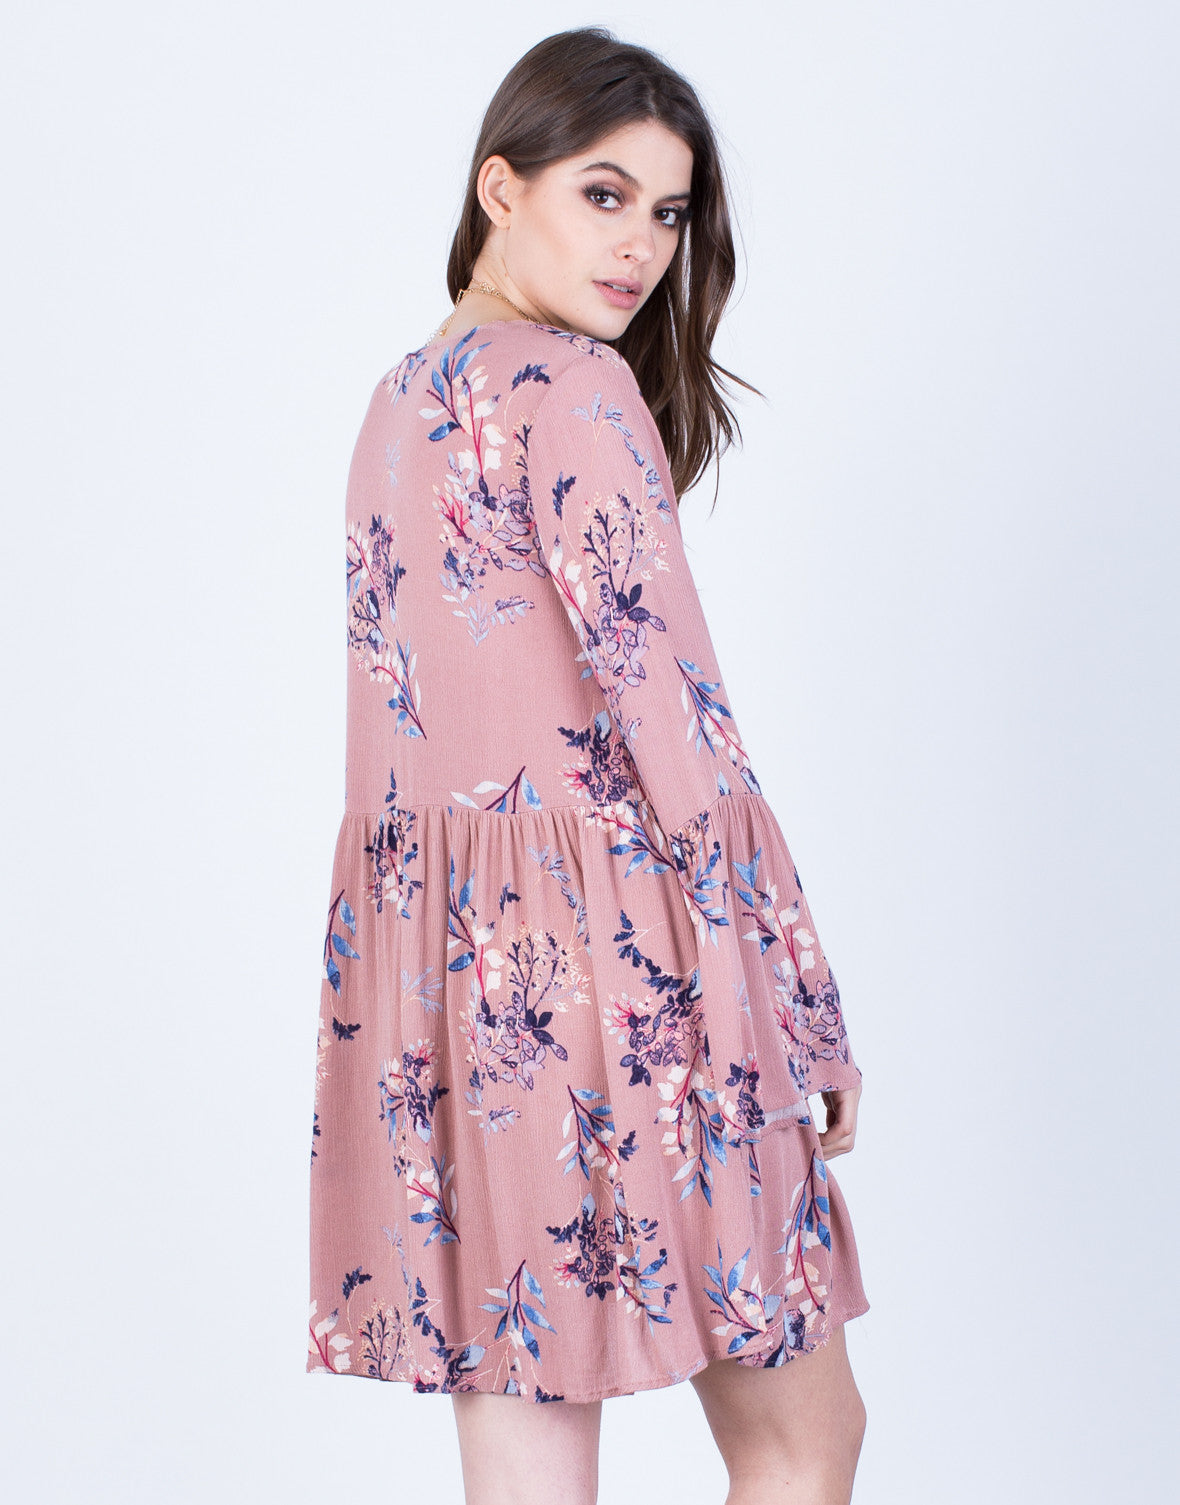 Back View of Blooming Floral Dress